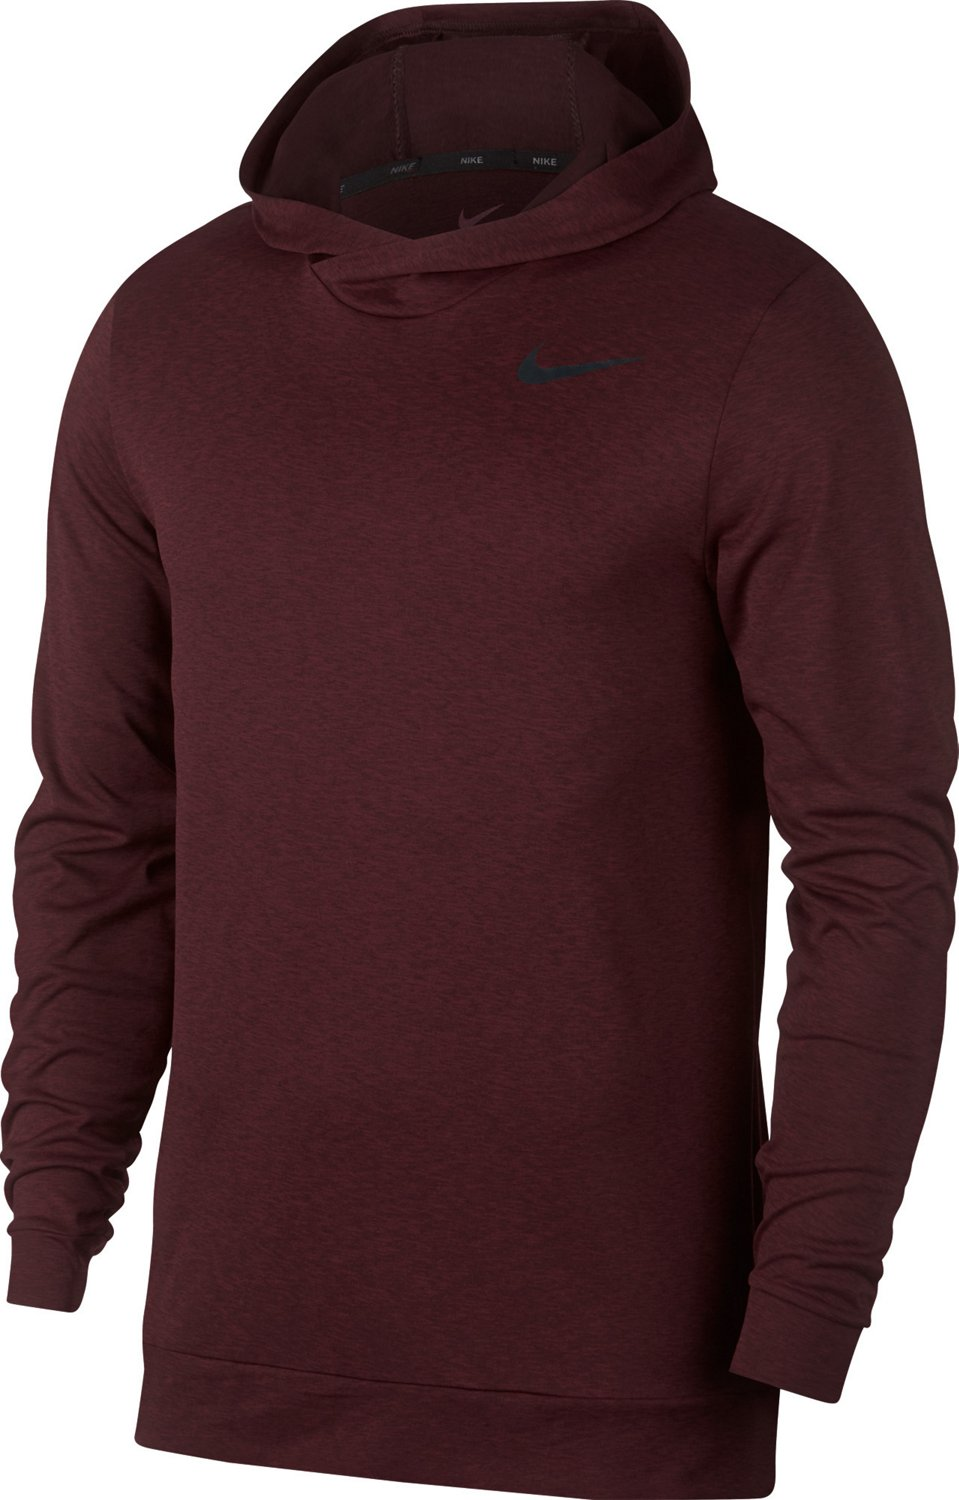 fbcdd2ed1da5 Display product reviews for Nike Men s Breathe Training Hoodie